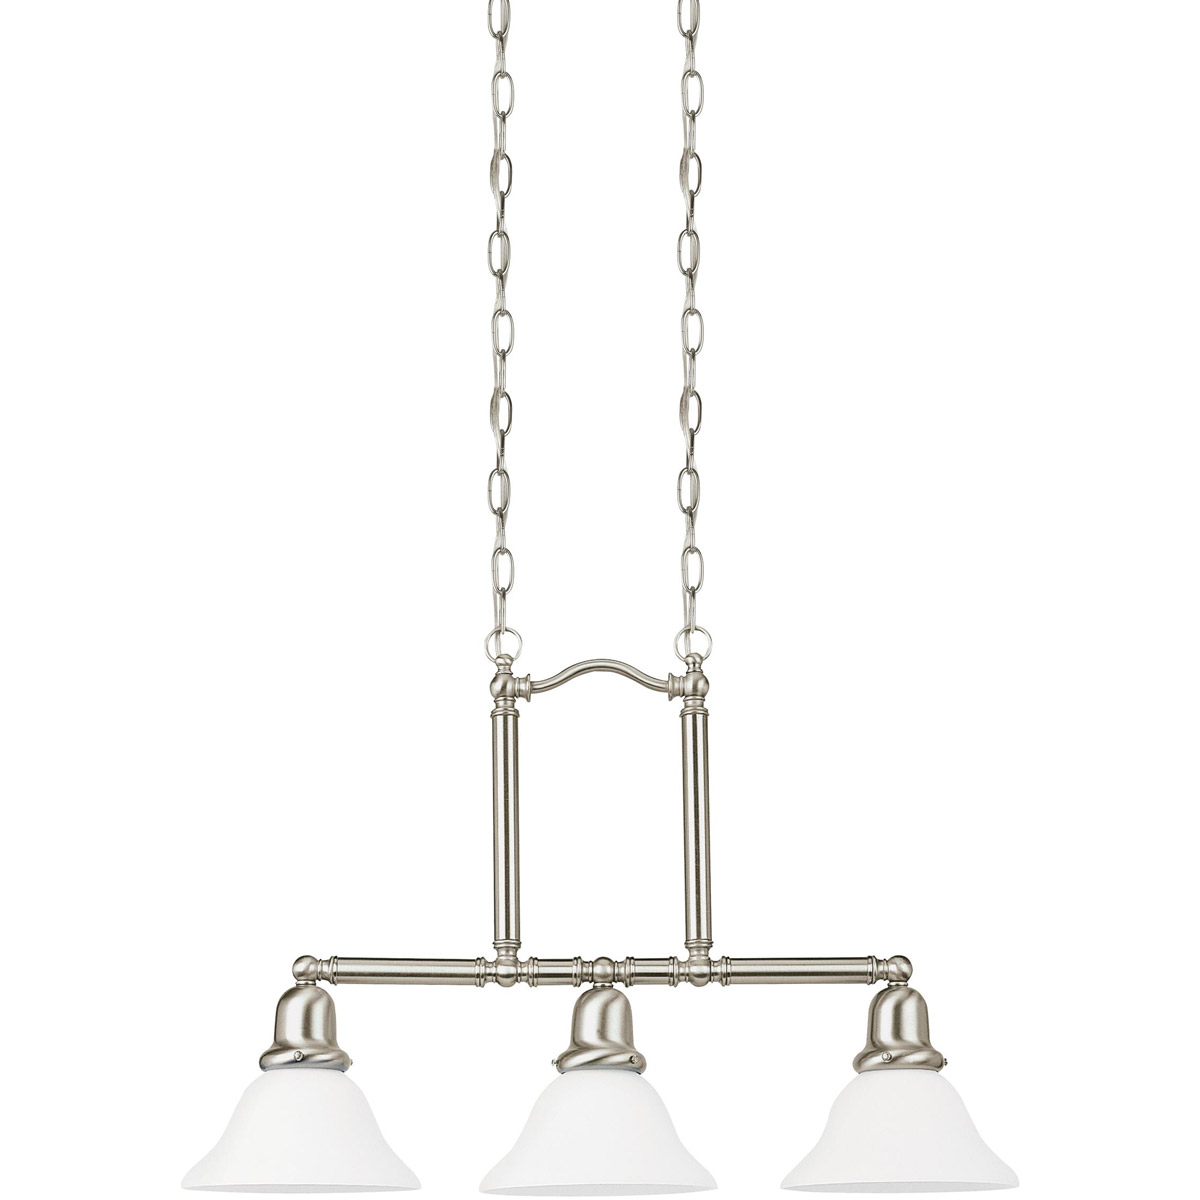 Sea Gull Lighting Sussex 3 Light Pendant in Brushed Nickel 66061-962 photo